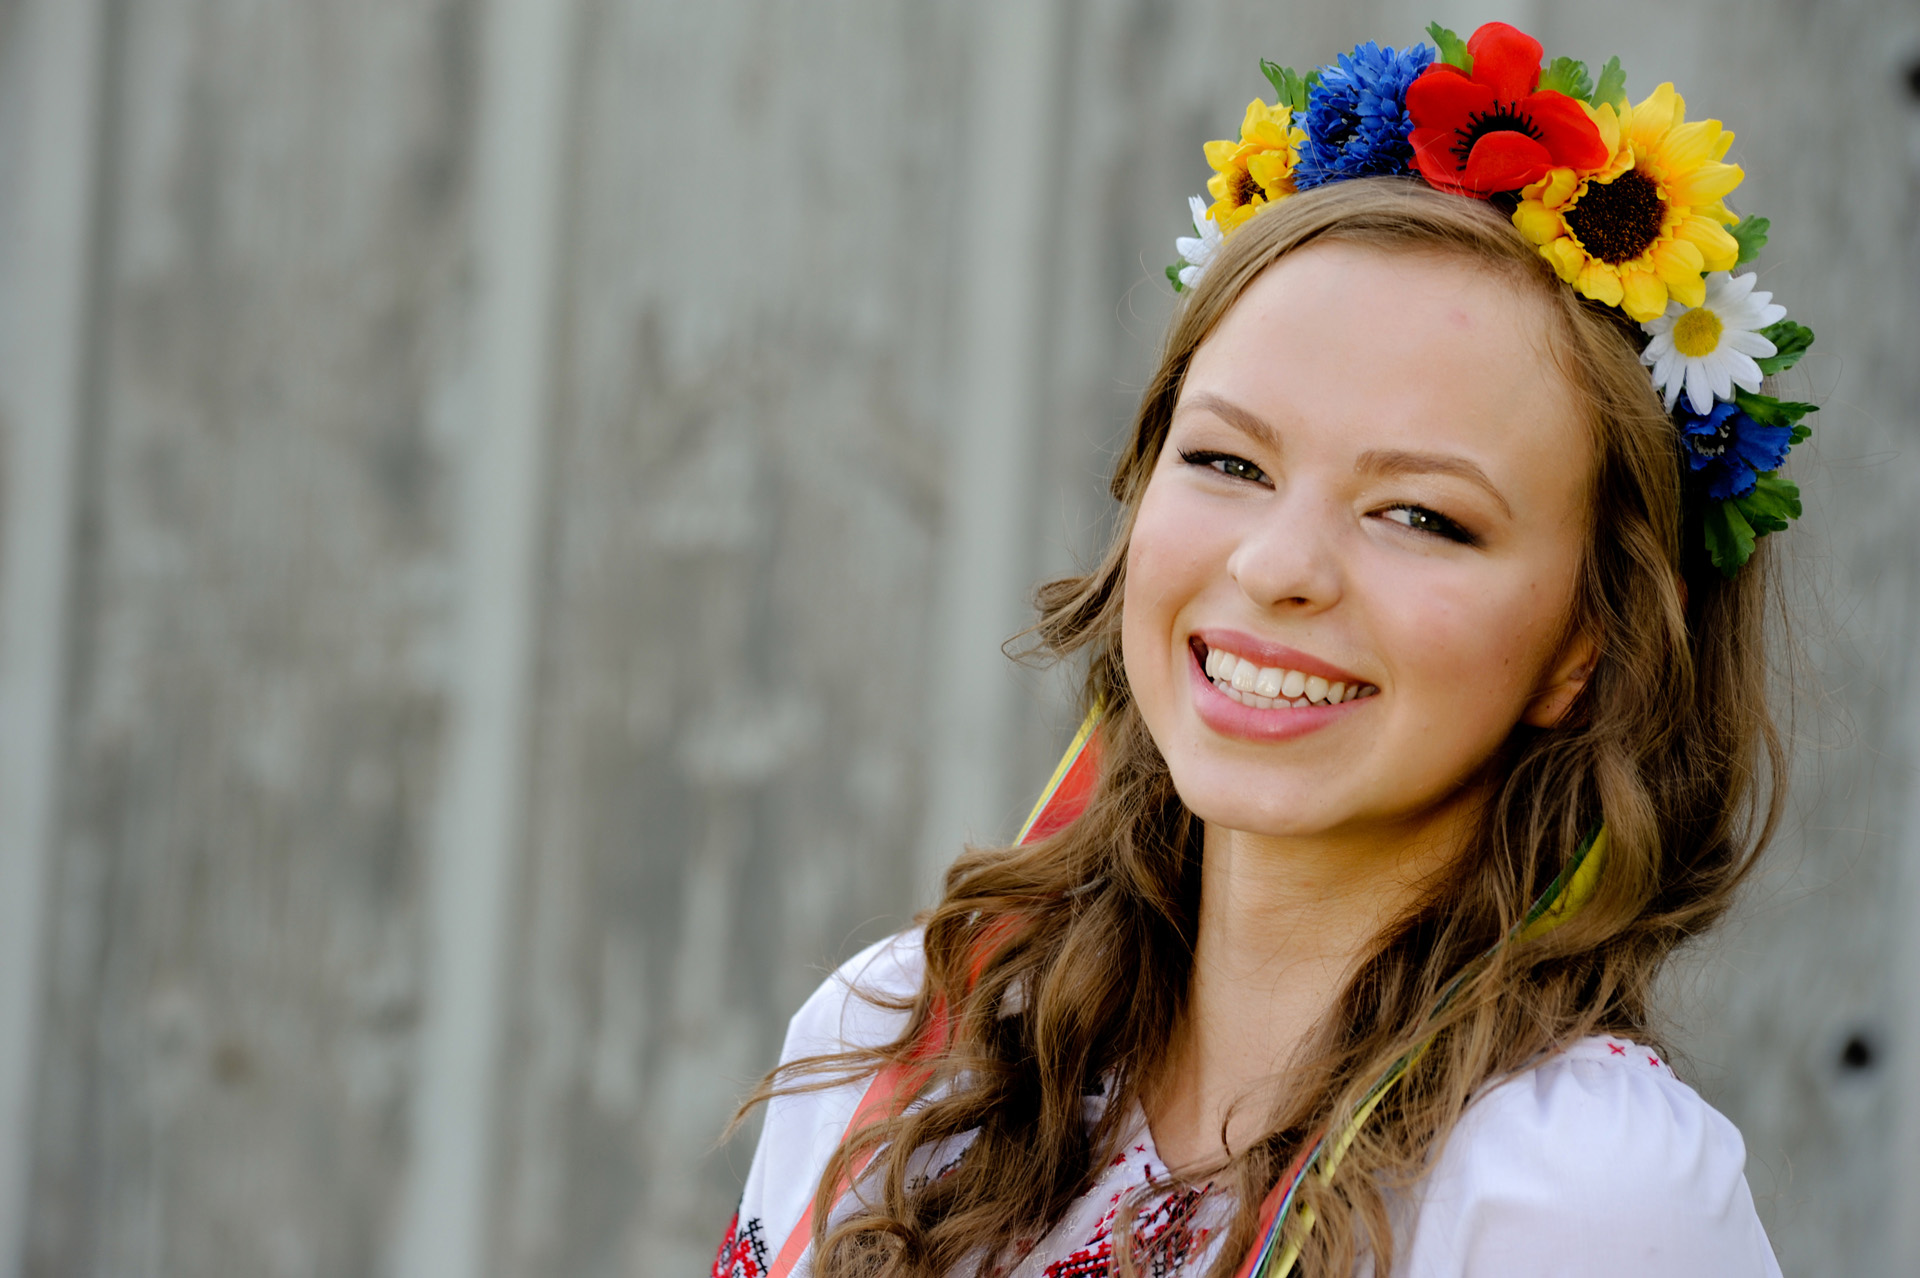 Troy , Michigan senior pictures photo of a high school senior posing in her traditional Russian dance outfit for her senior pictures in Troy, Michigan.